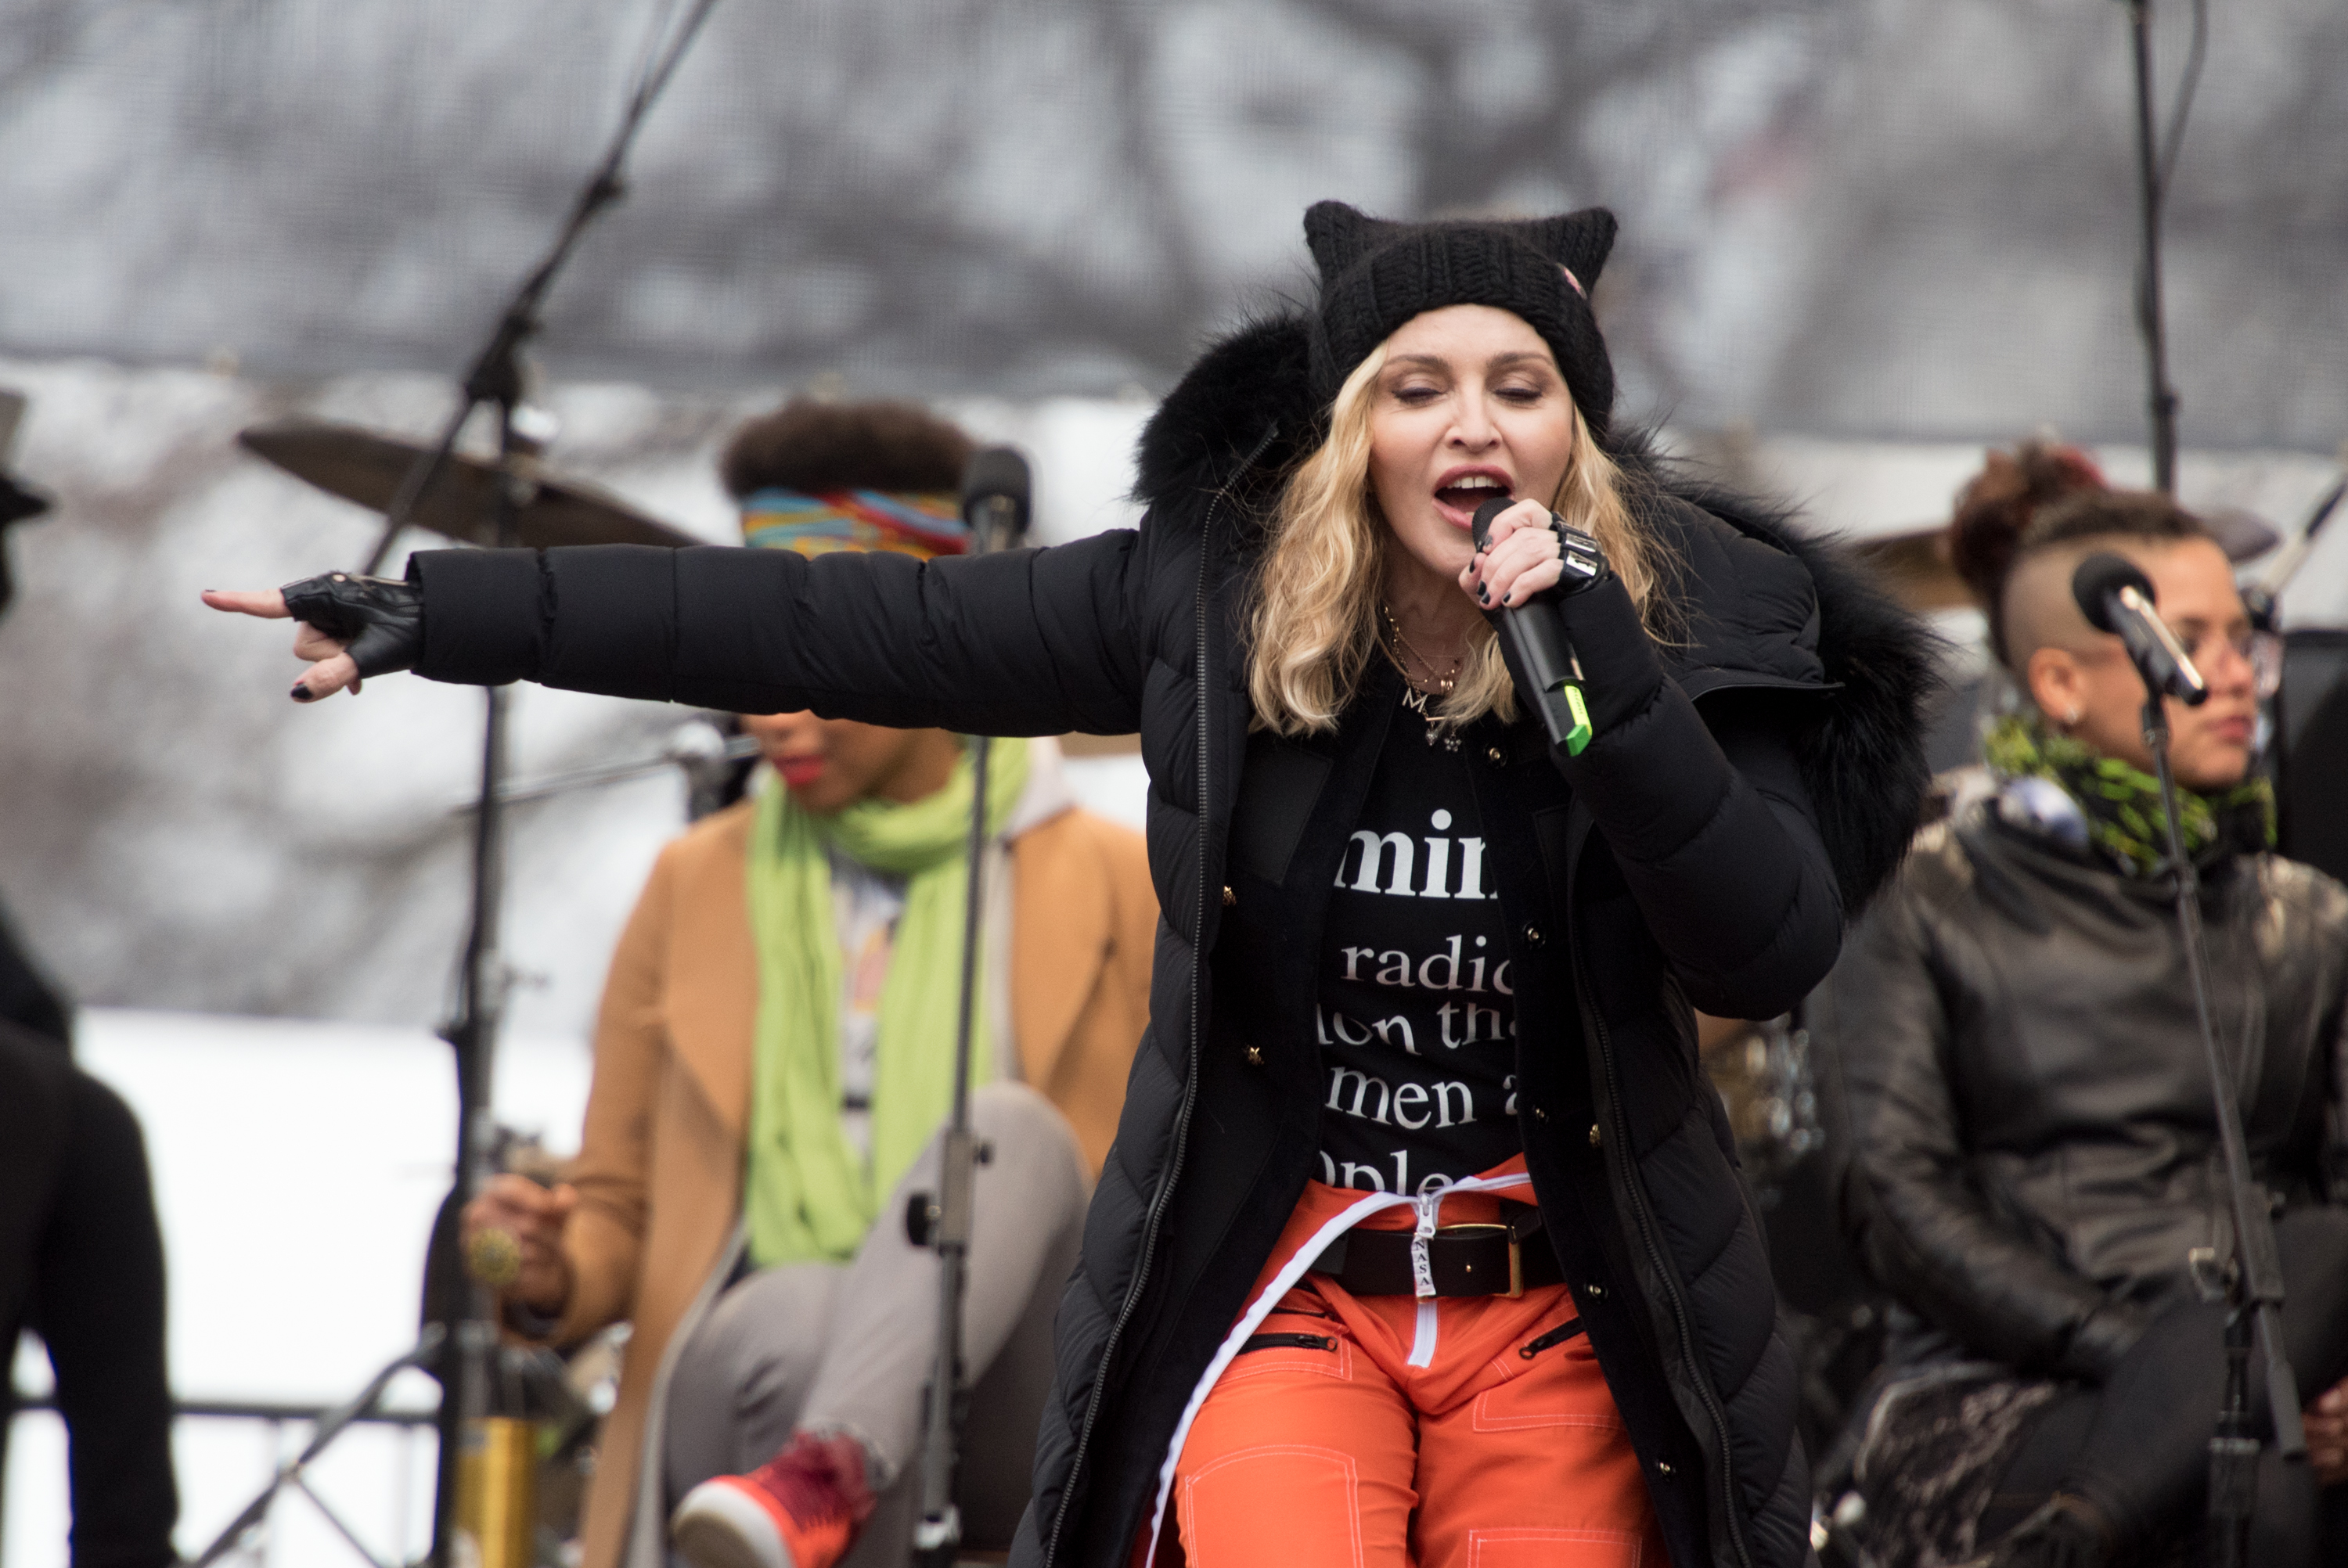 Madonna attends the Women's March on Washington in Washington, on Jan. 21, 2017.